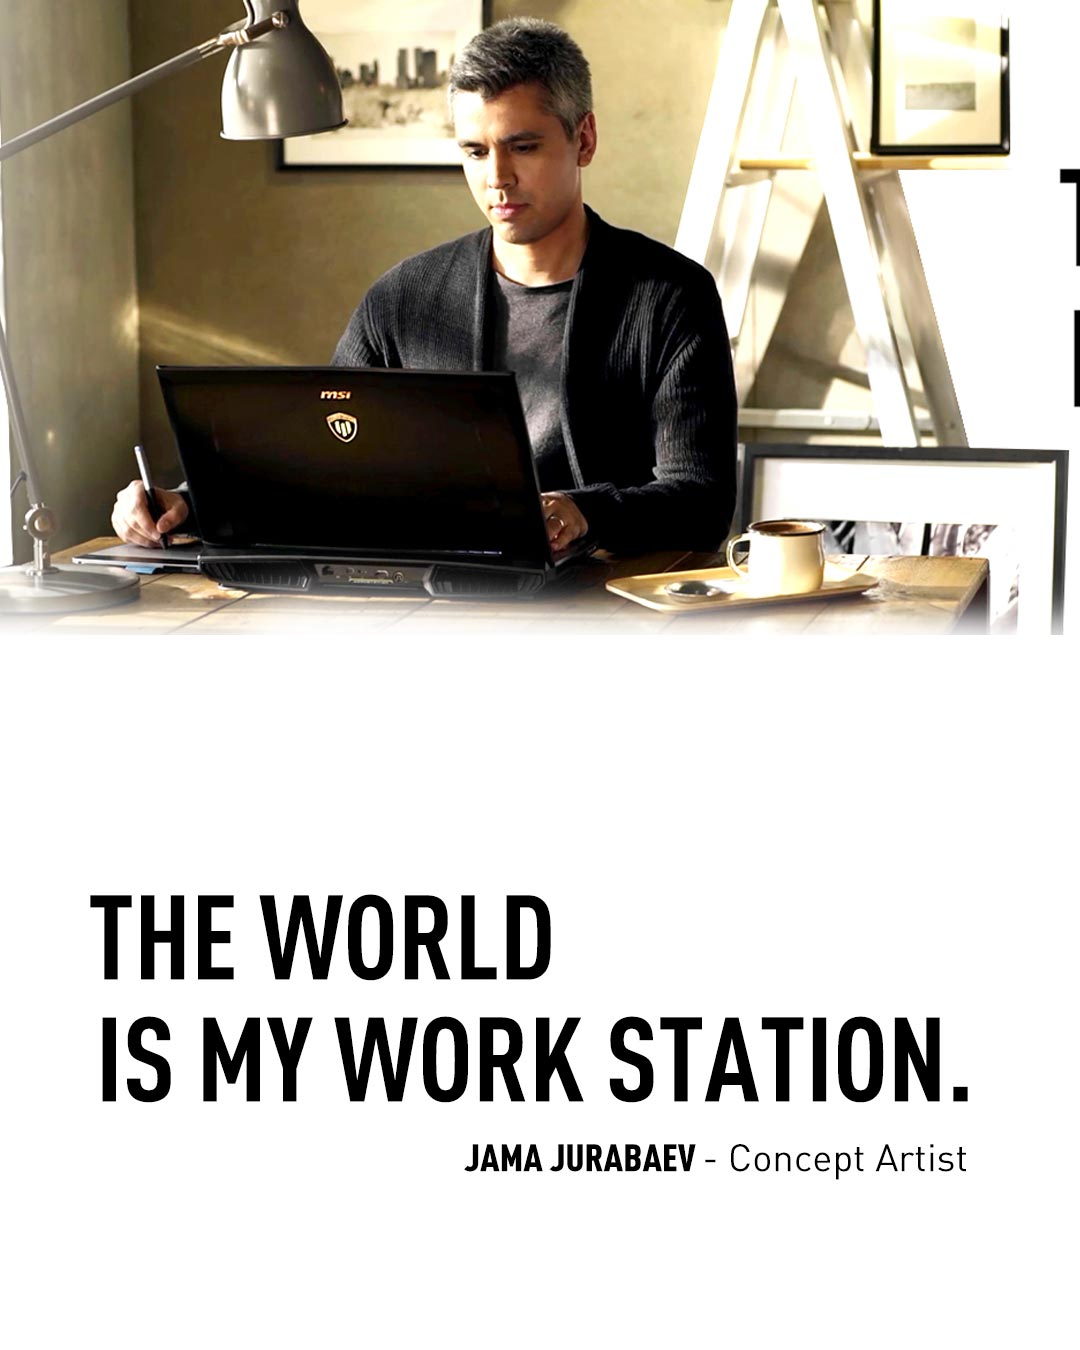 The World is my workstaion